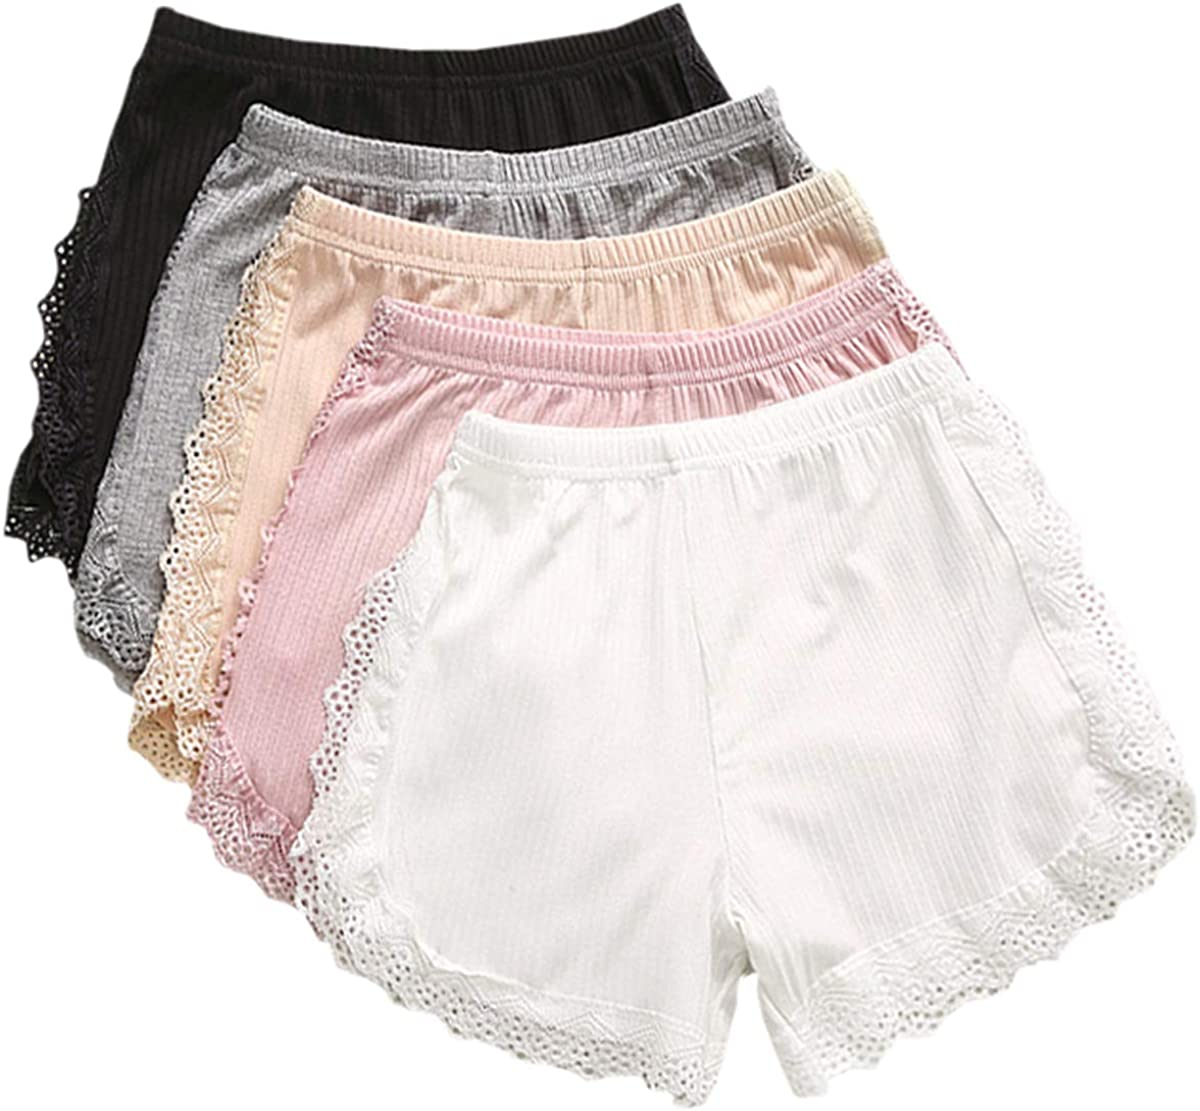 Max 54% OFF Umeyda Girl's Max 47% OFF Ribbed Safty Shorts Years 2-10 with Lace